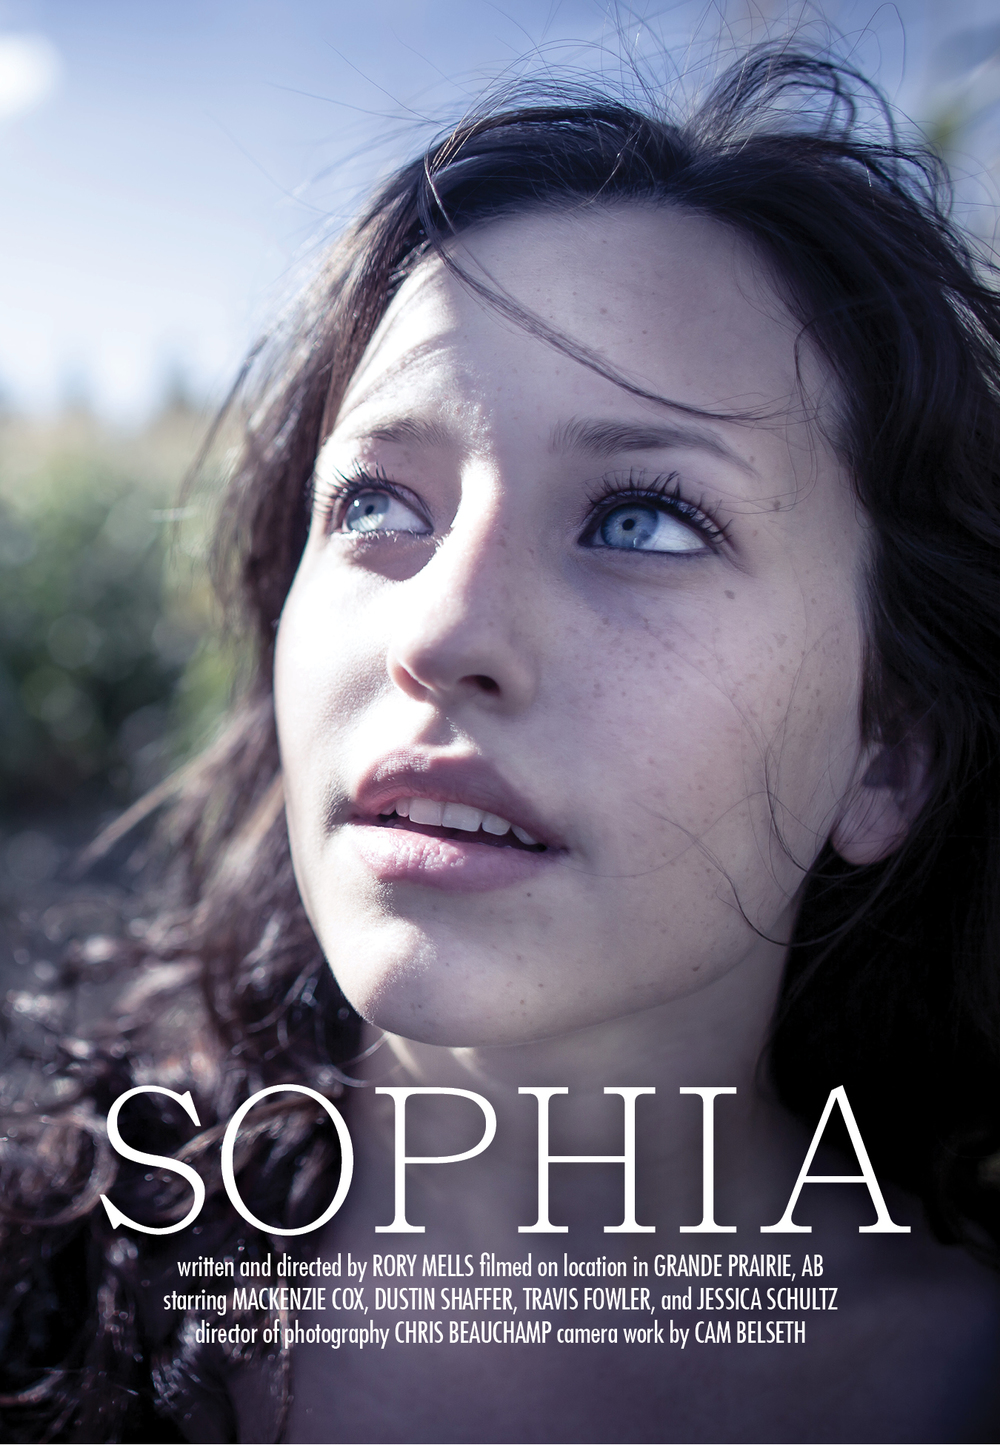 Director of Photography: Sophia (short film)